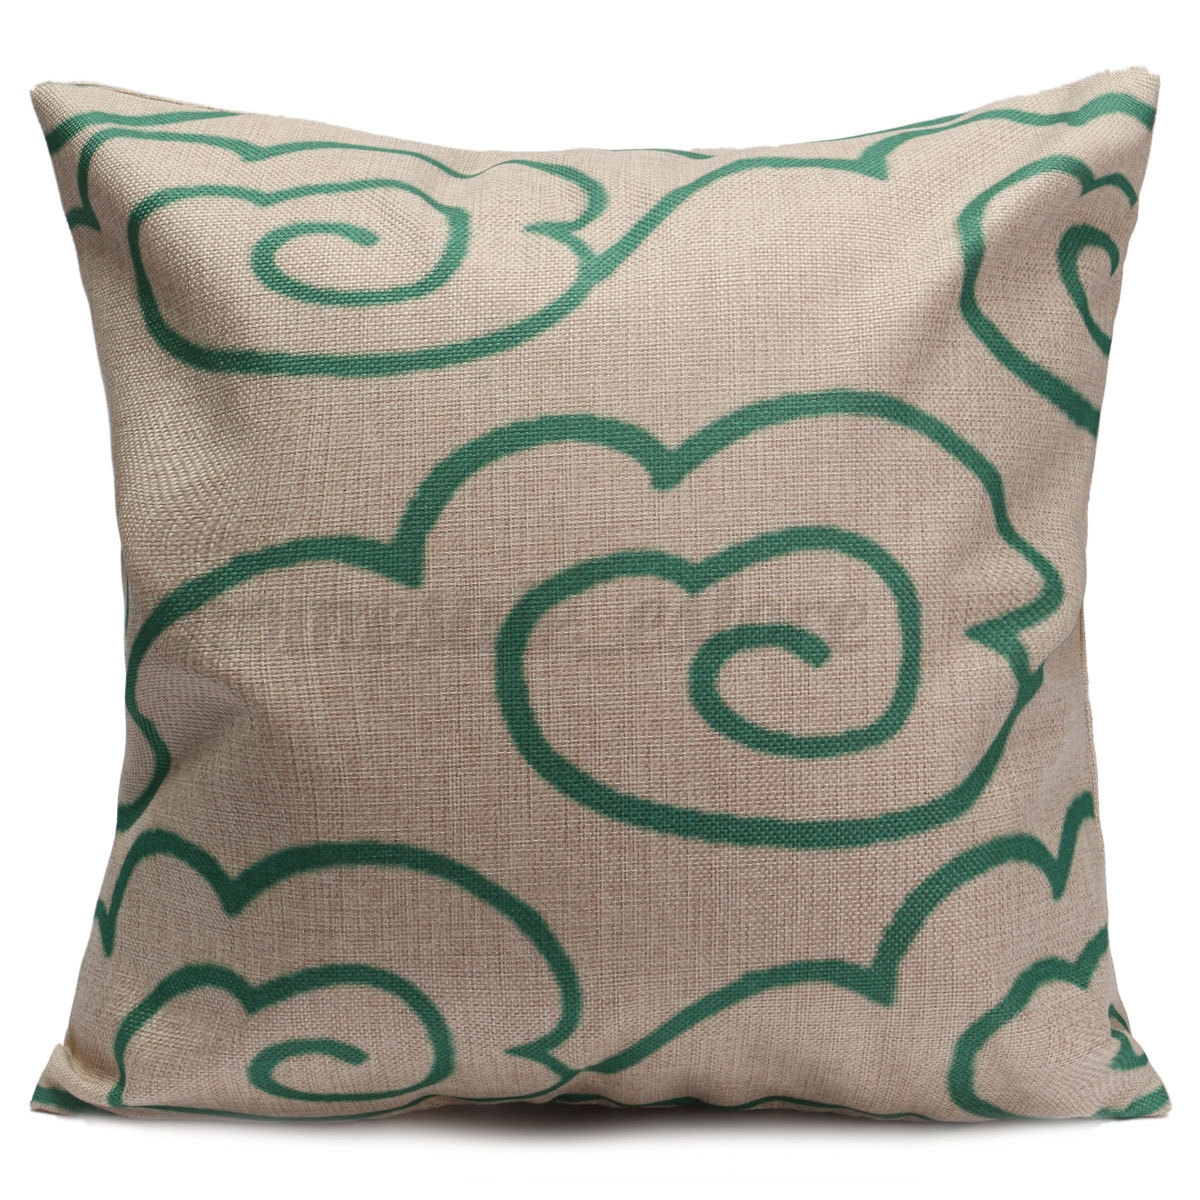 Casual Style Vintage Cushion Cover Throw Pillow Covers for Home Sofa Decoration eBay